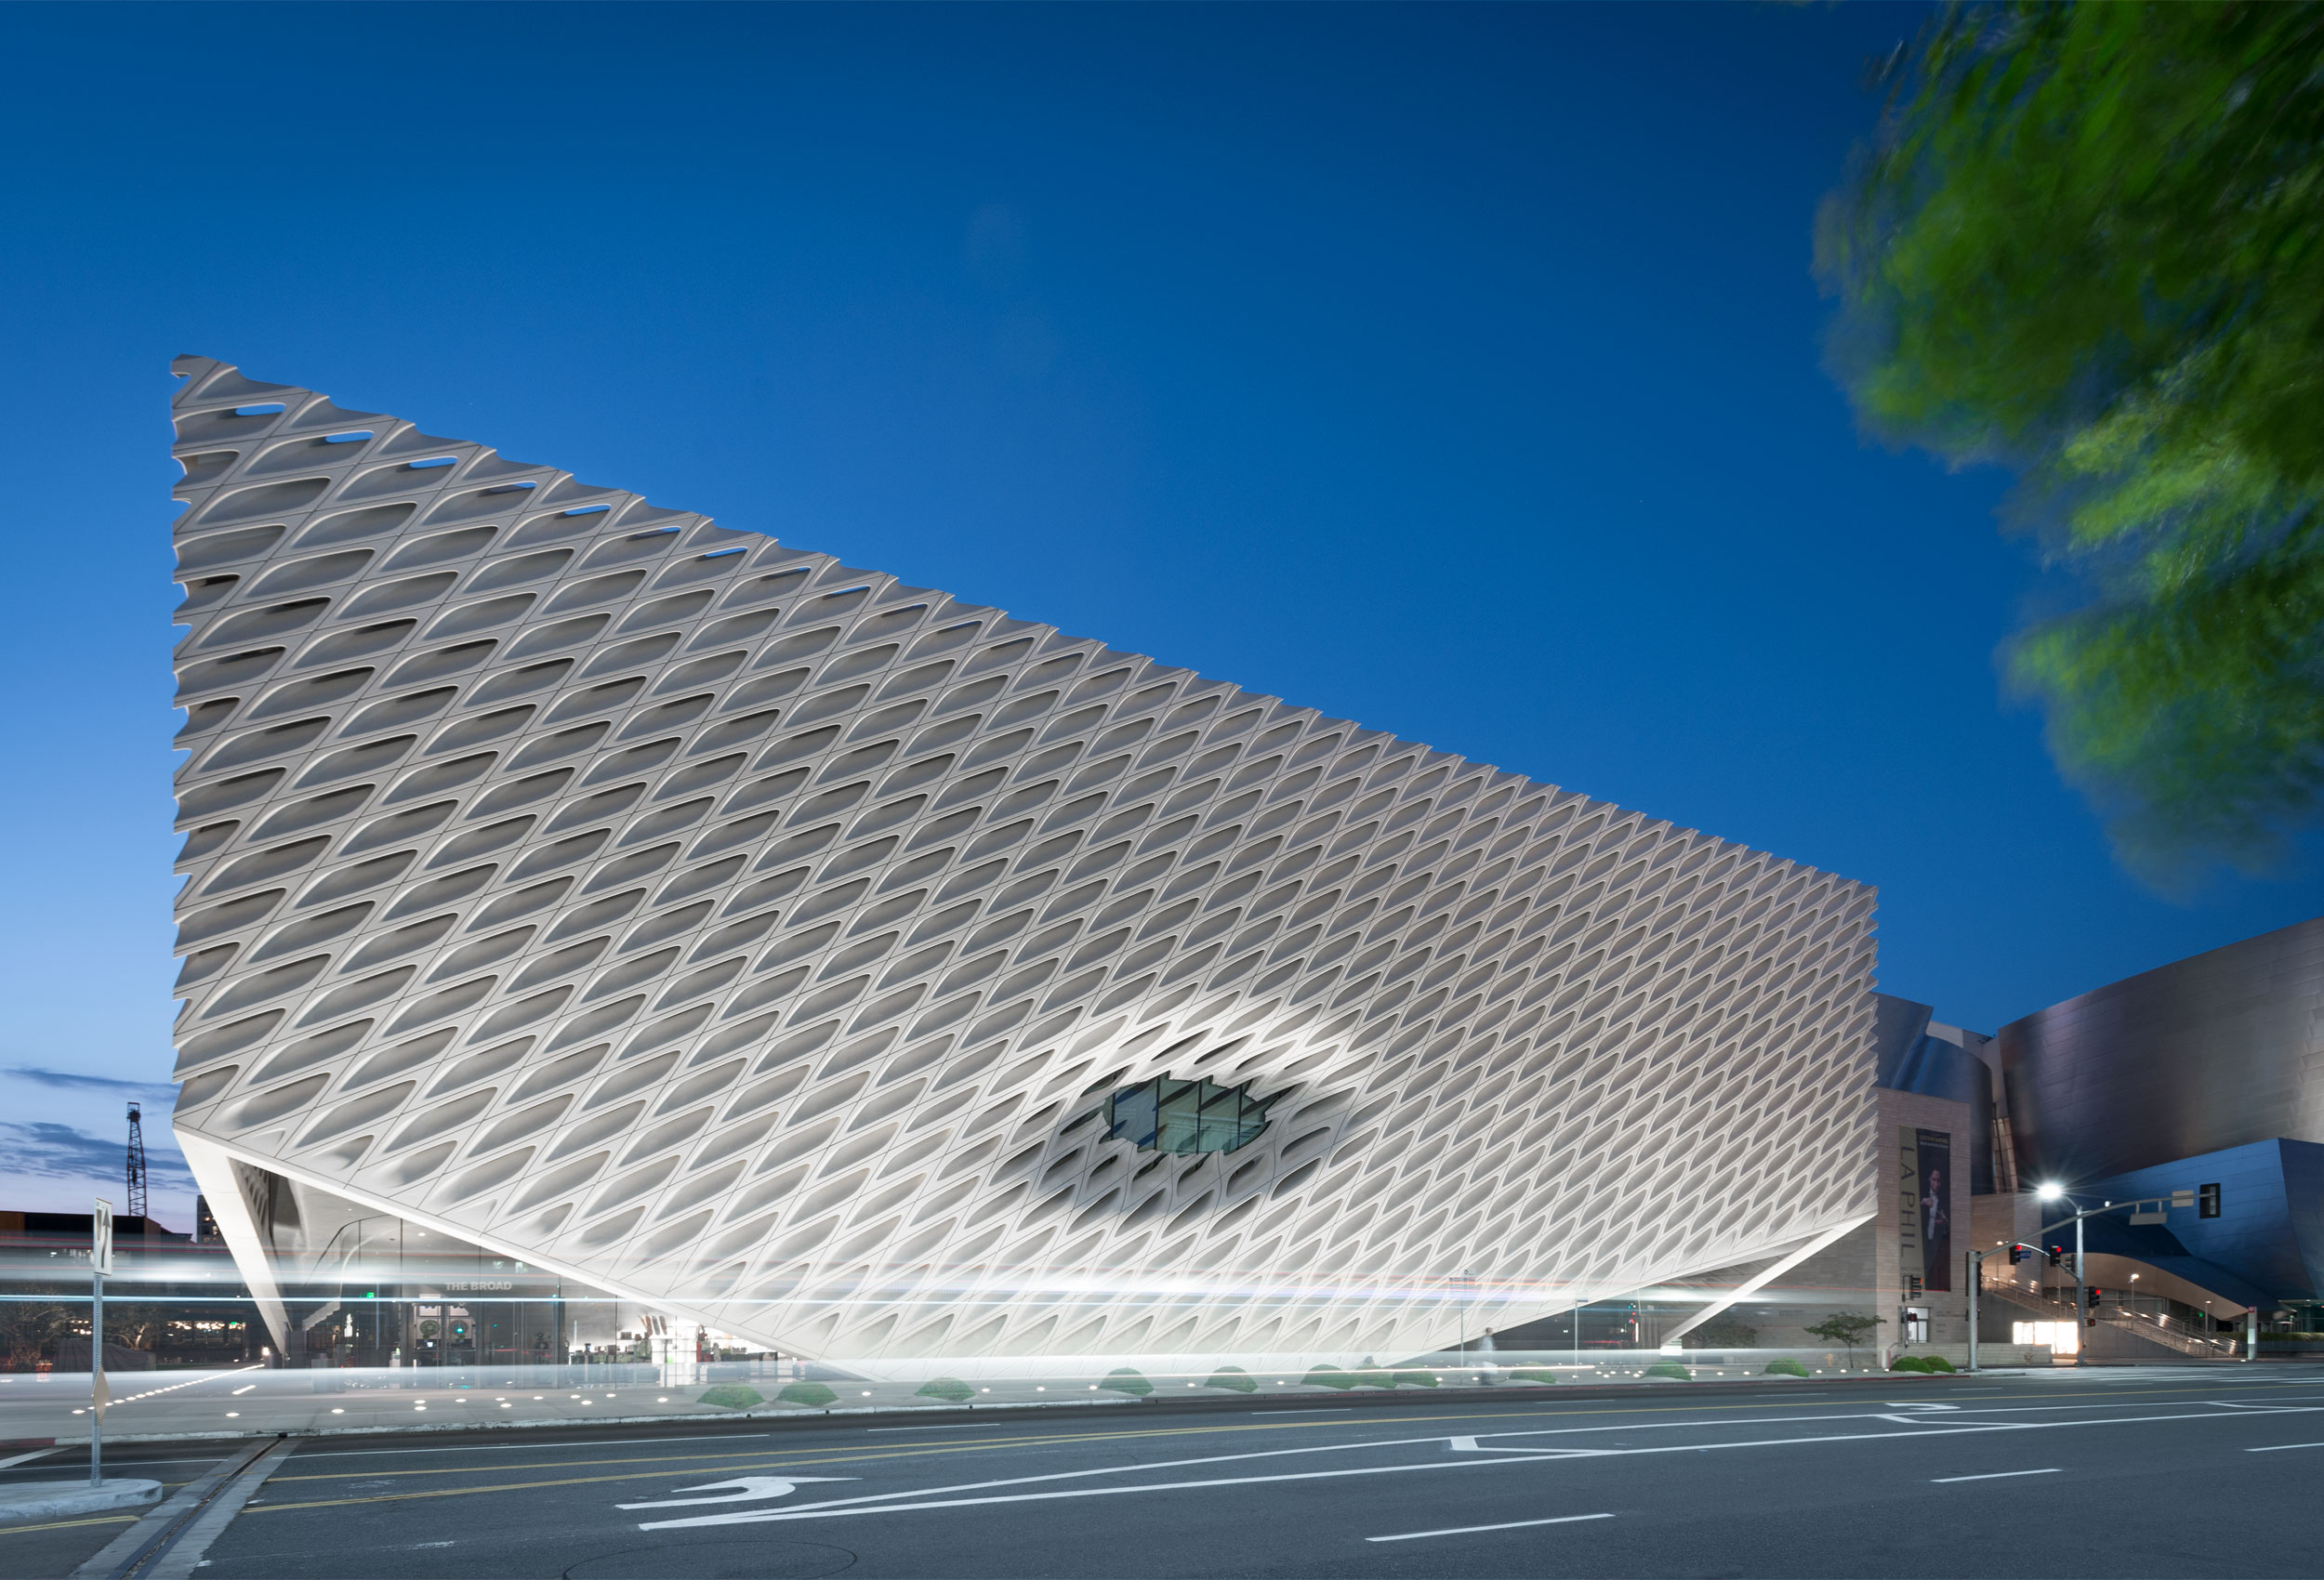 Broad Museum by architectural photographer Kristopher Grunert